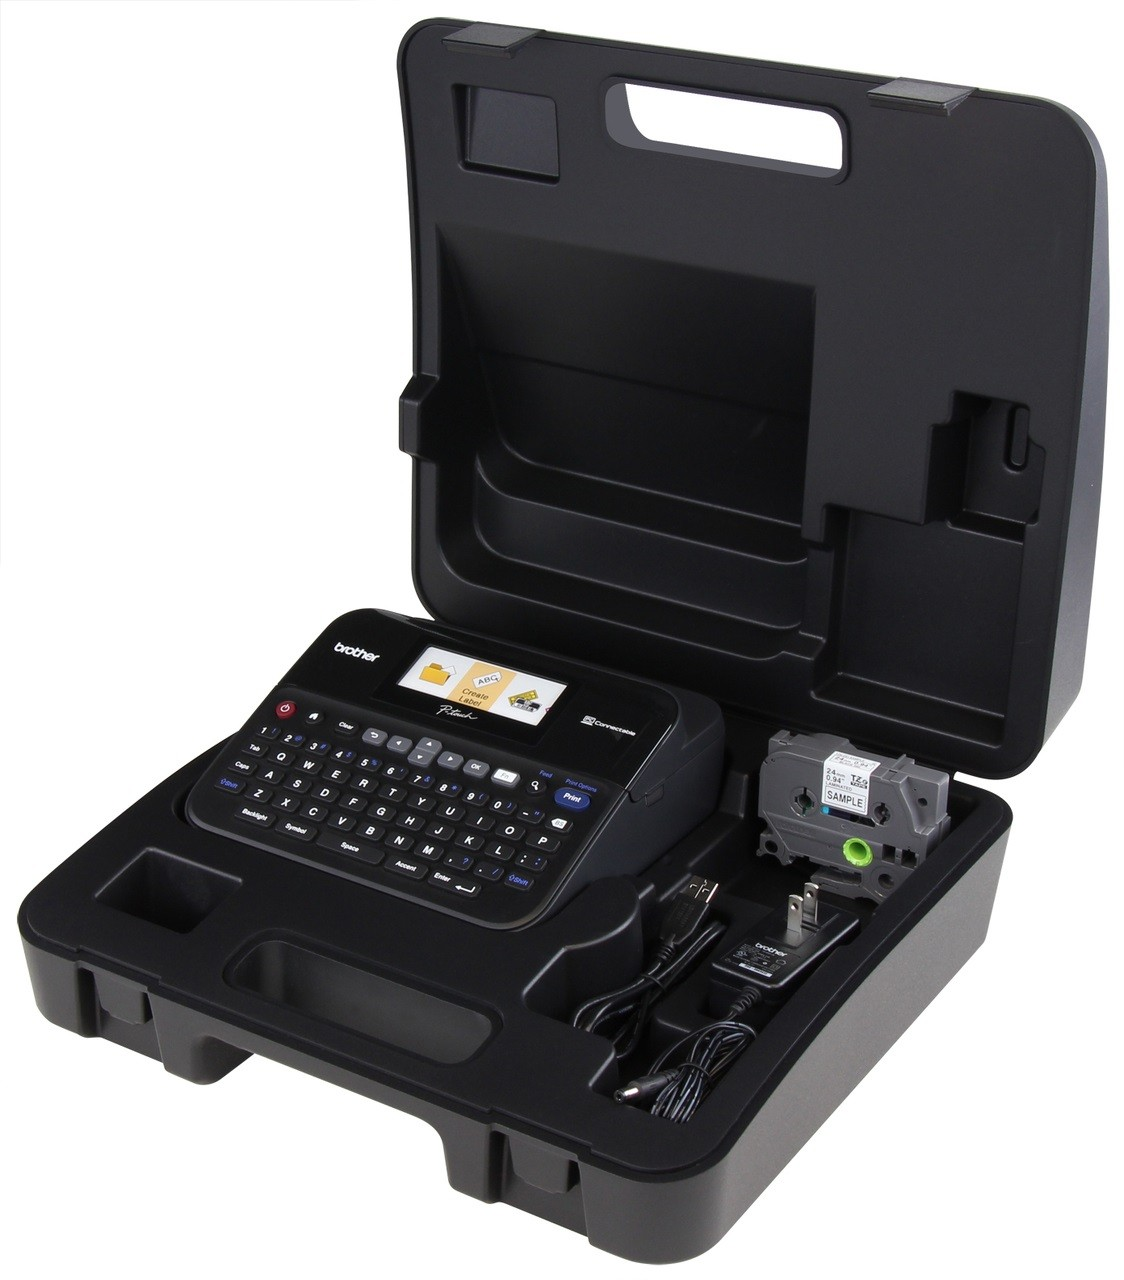 Brother PT-D600VP P-touch Label Maker - Arabic, Persian and English